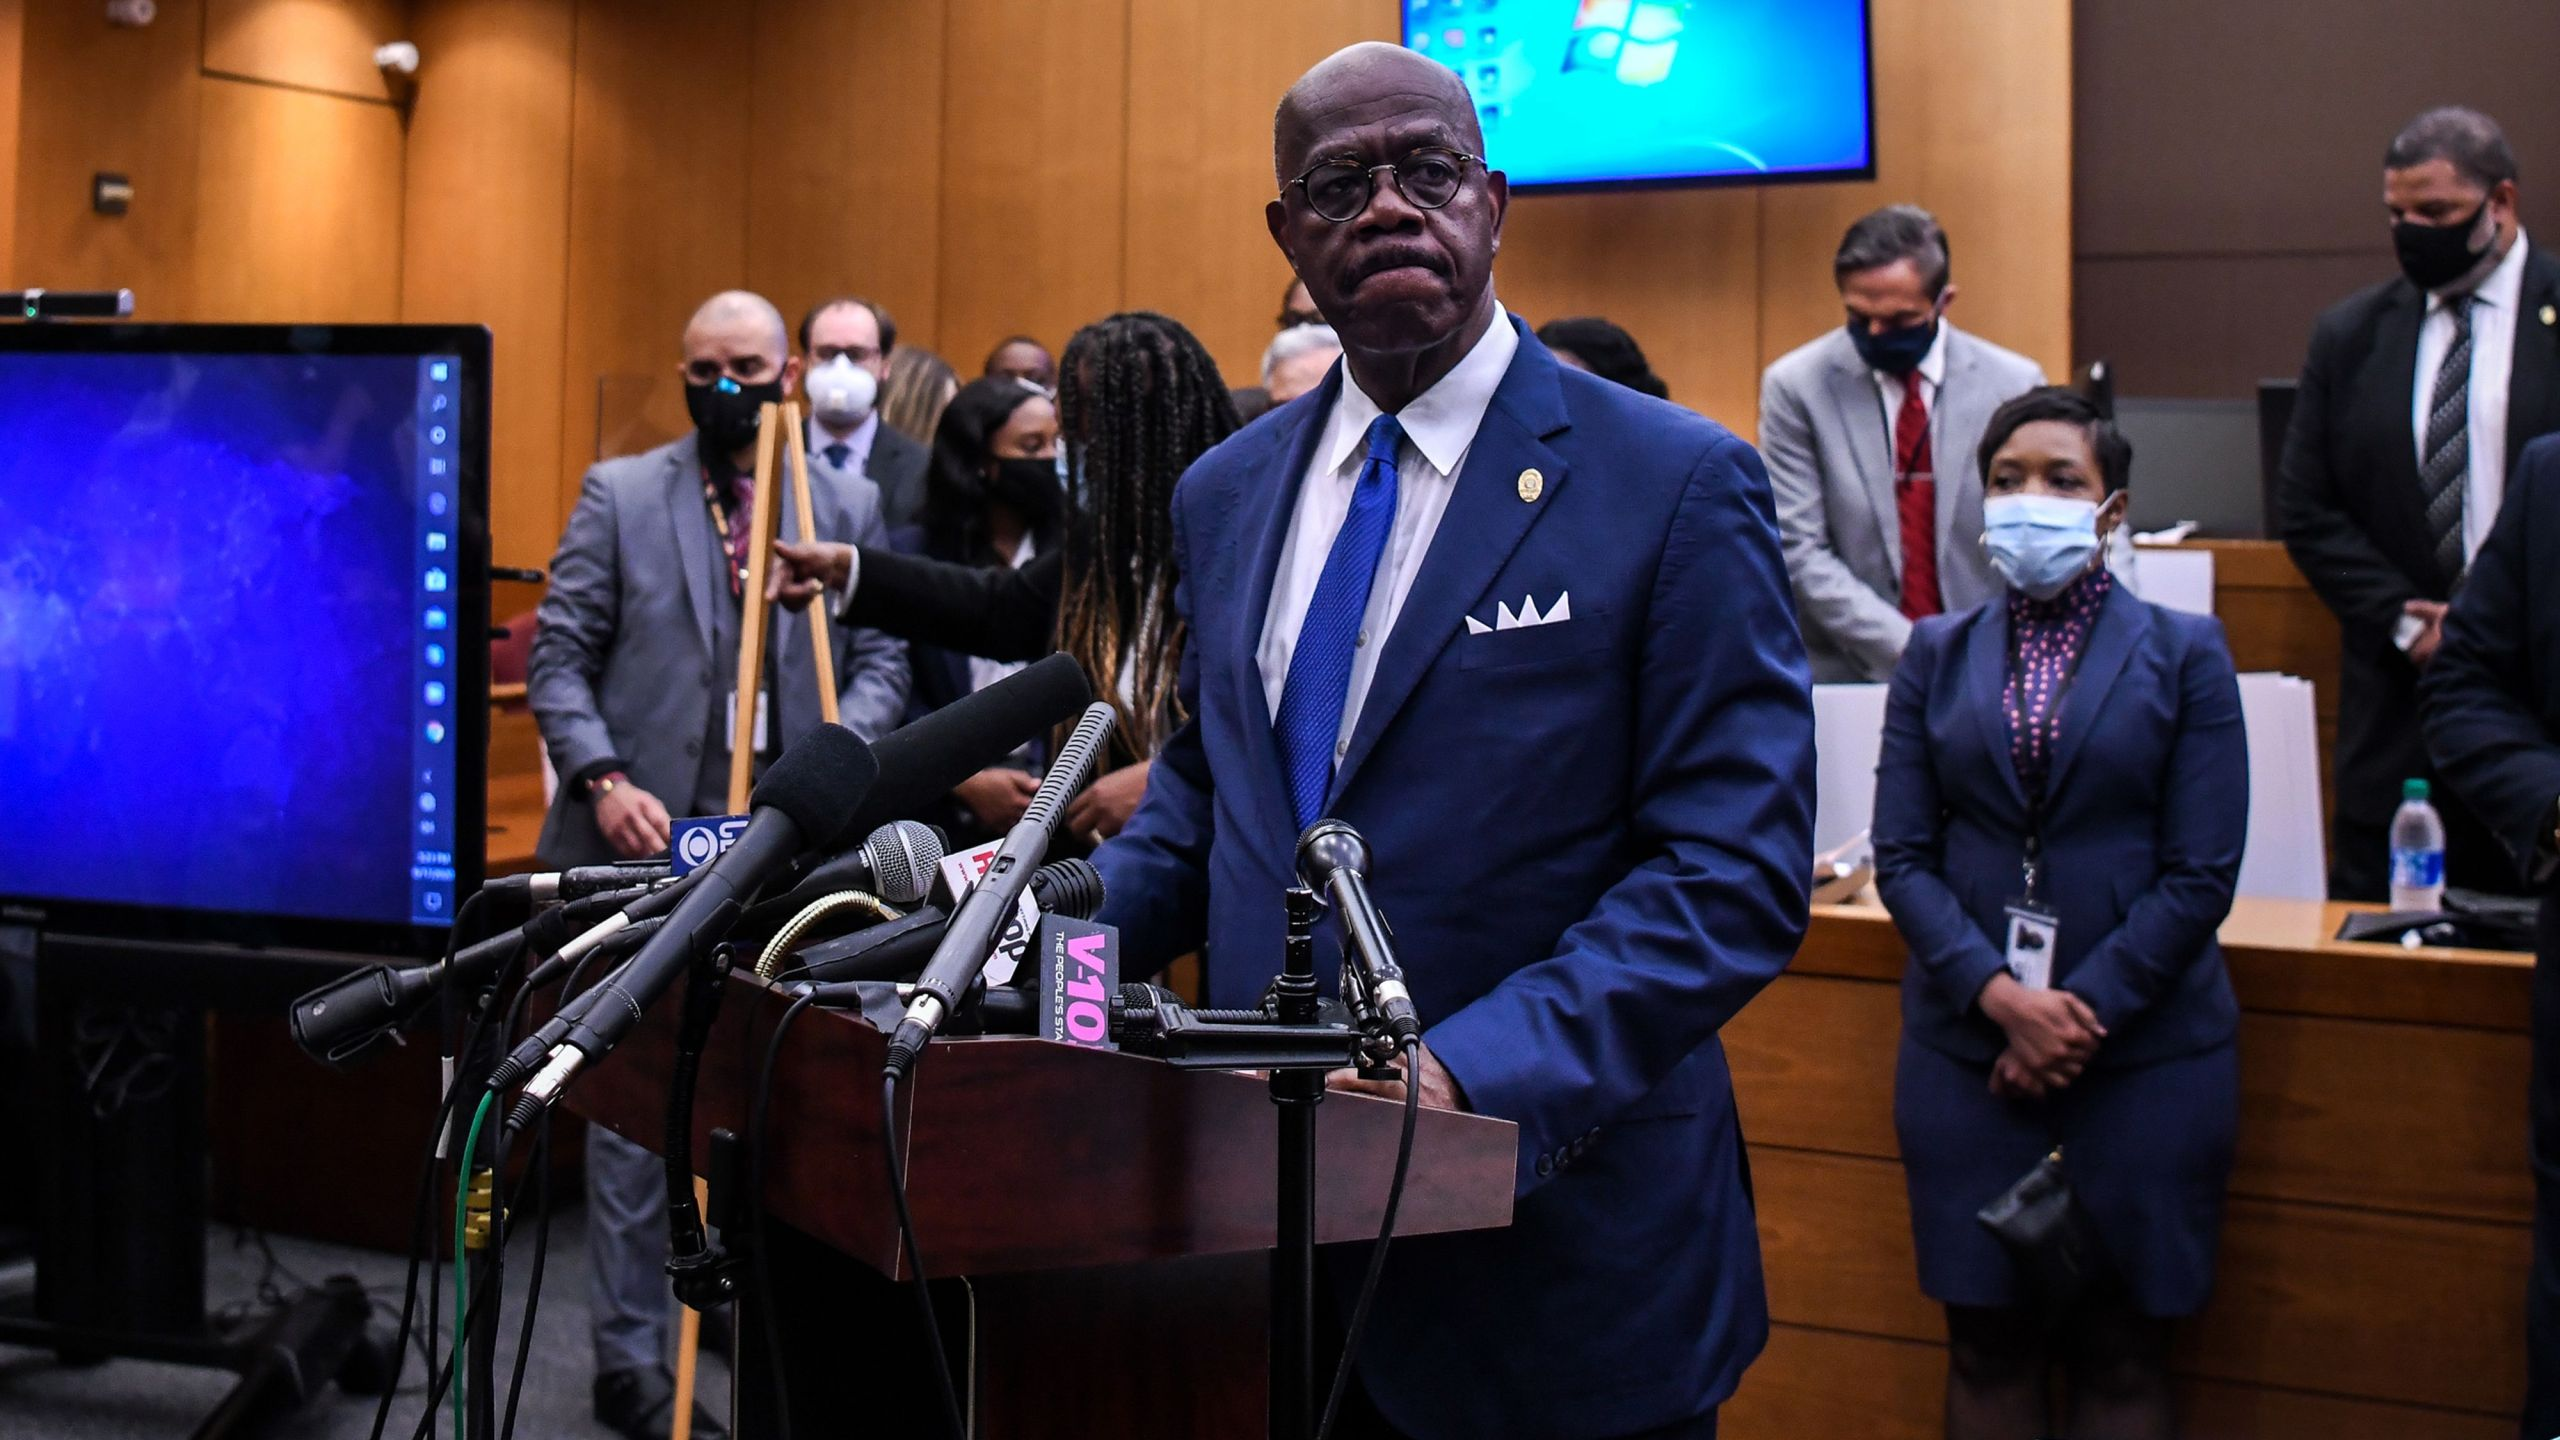 Fulton County District Attorney Paul Howard speaks to the press as he announces 11 charges against former Atlanta police Officer Garrett Rolfe on June 17, 2020, in Atlanta, Georgia. (Chandan Khanna / AFP / Getty Images)